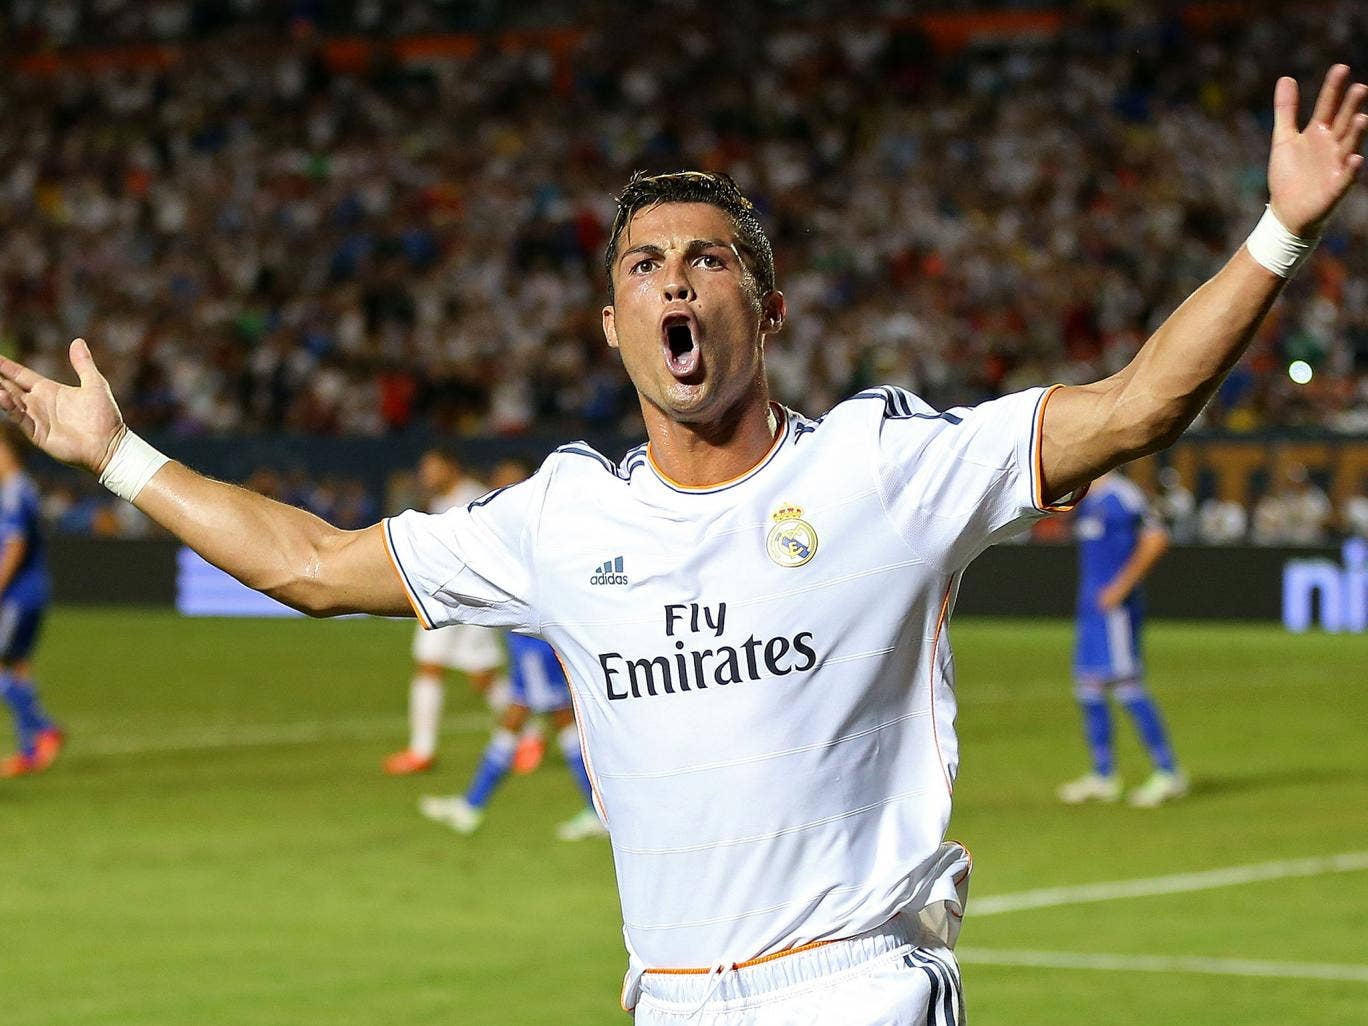 Cristiano Ronaldo celebrates scoring against Chelsea in the final of the International Champions Cup in Miami